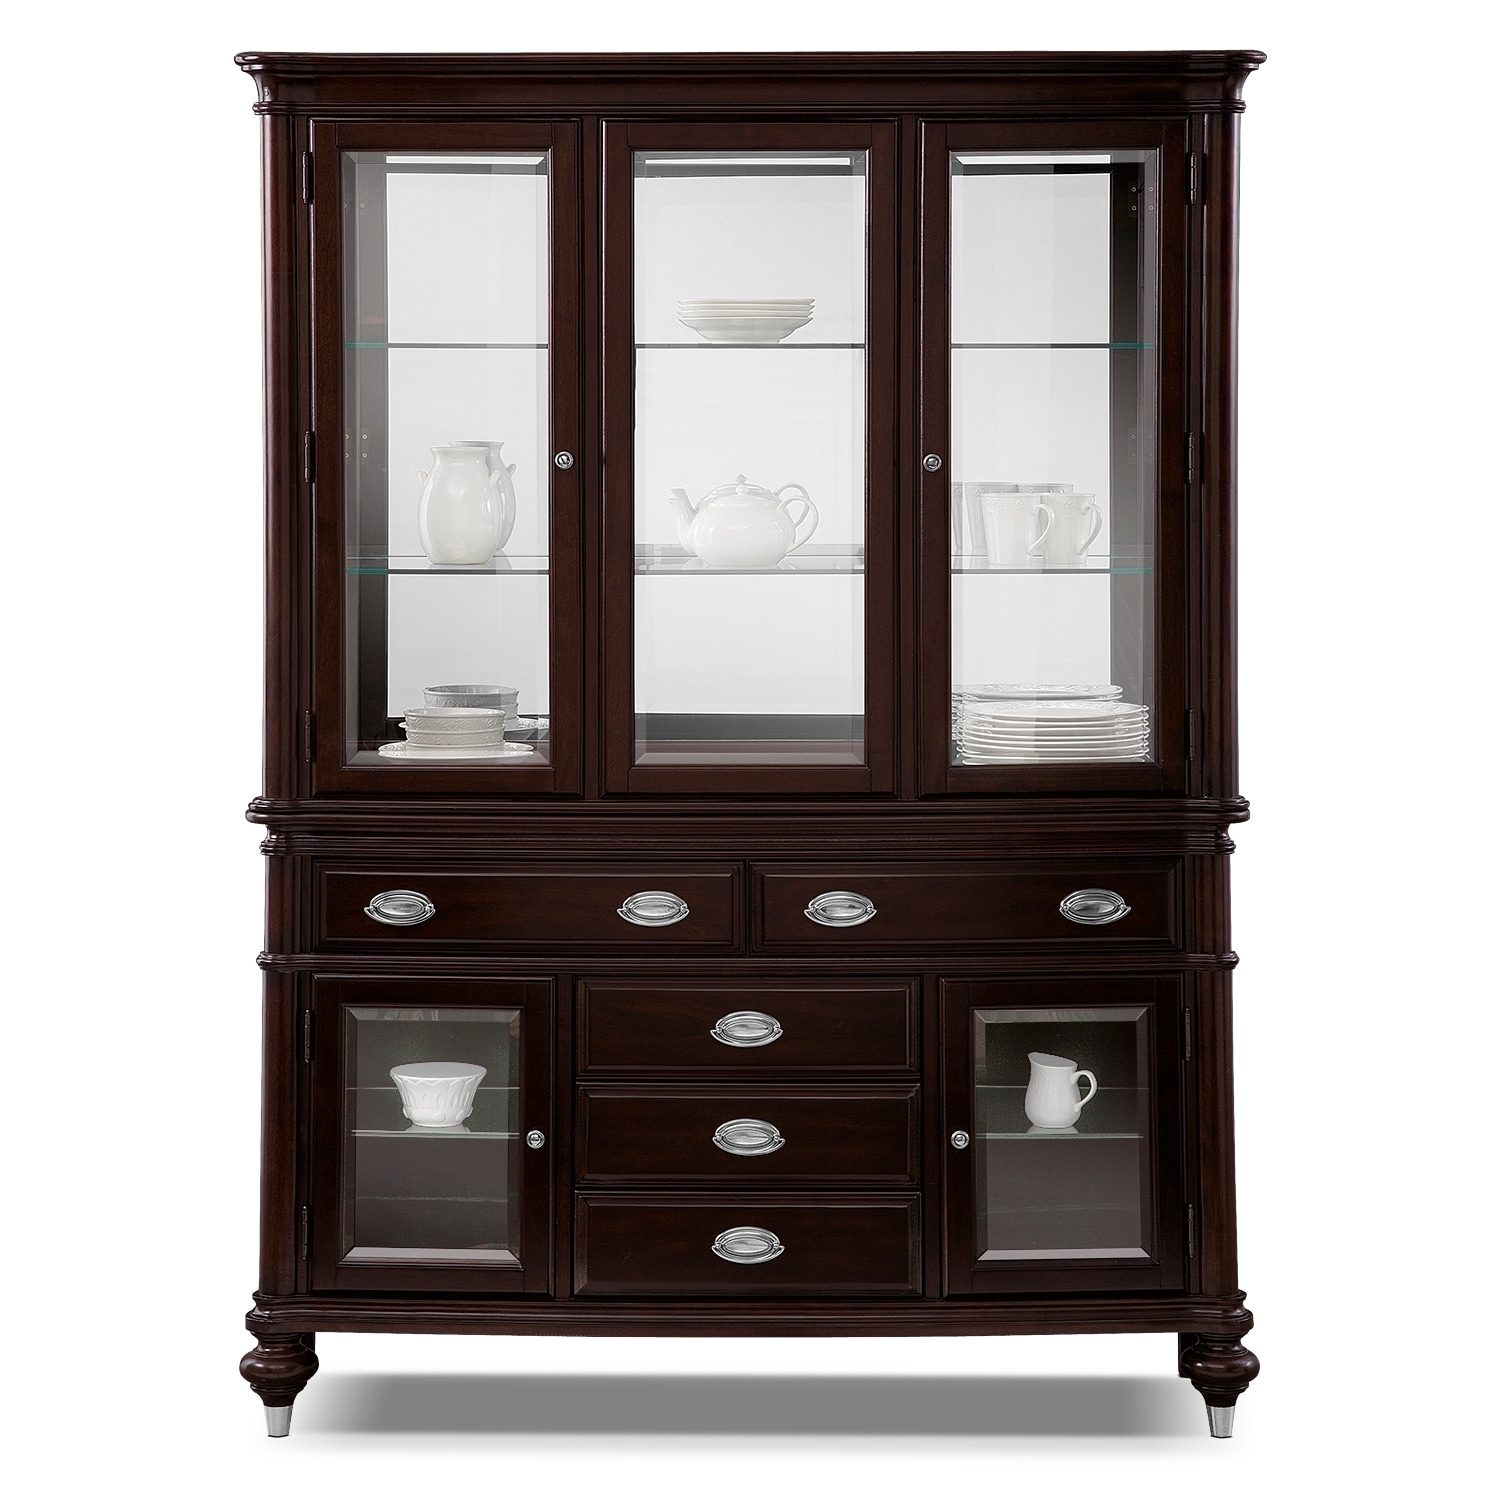 Dining Room Hutch For Sale: Esquire Buffet And Hutch - Cherry